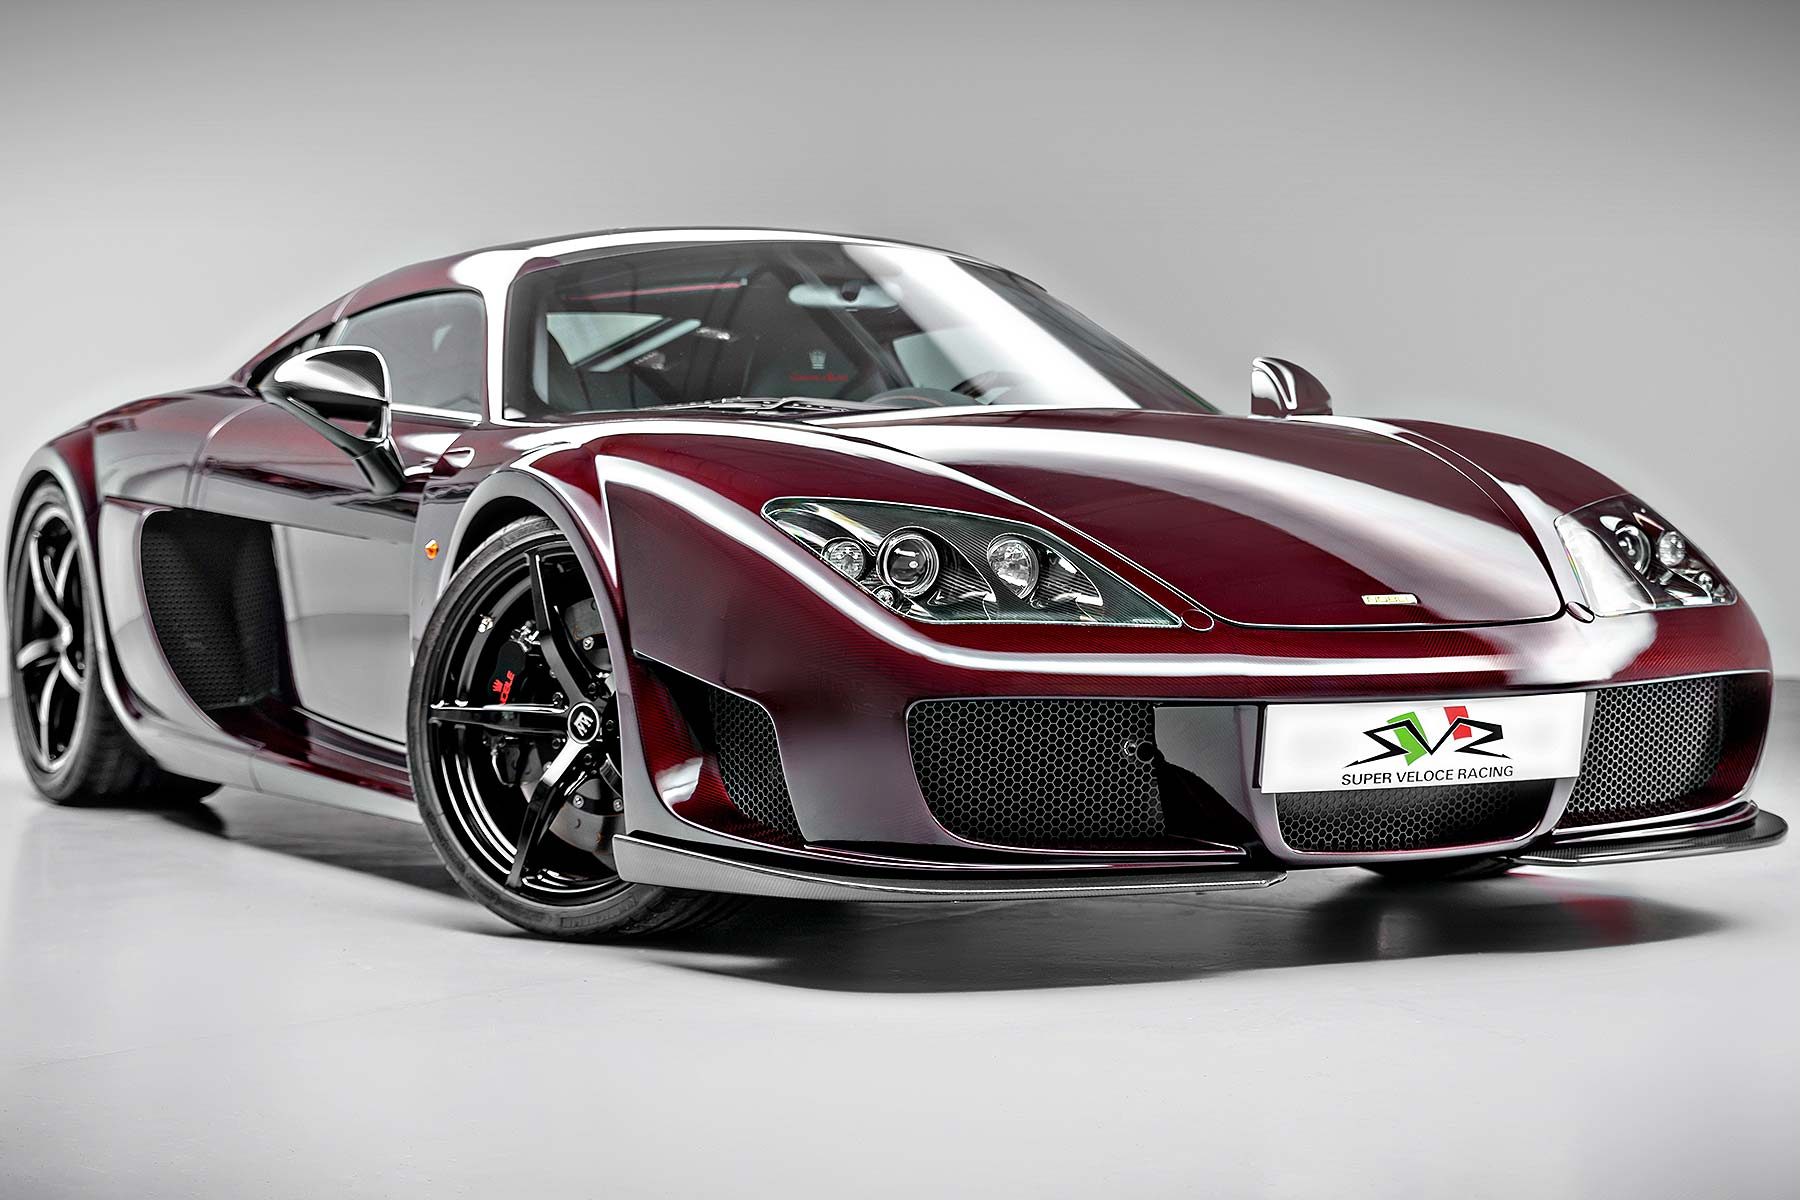 Relaunched Noble M600 supercar to star at London Motor Show | Motoring ...